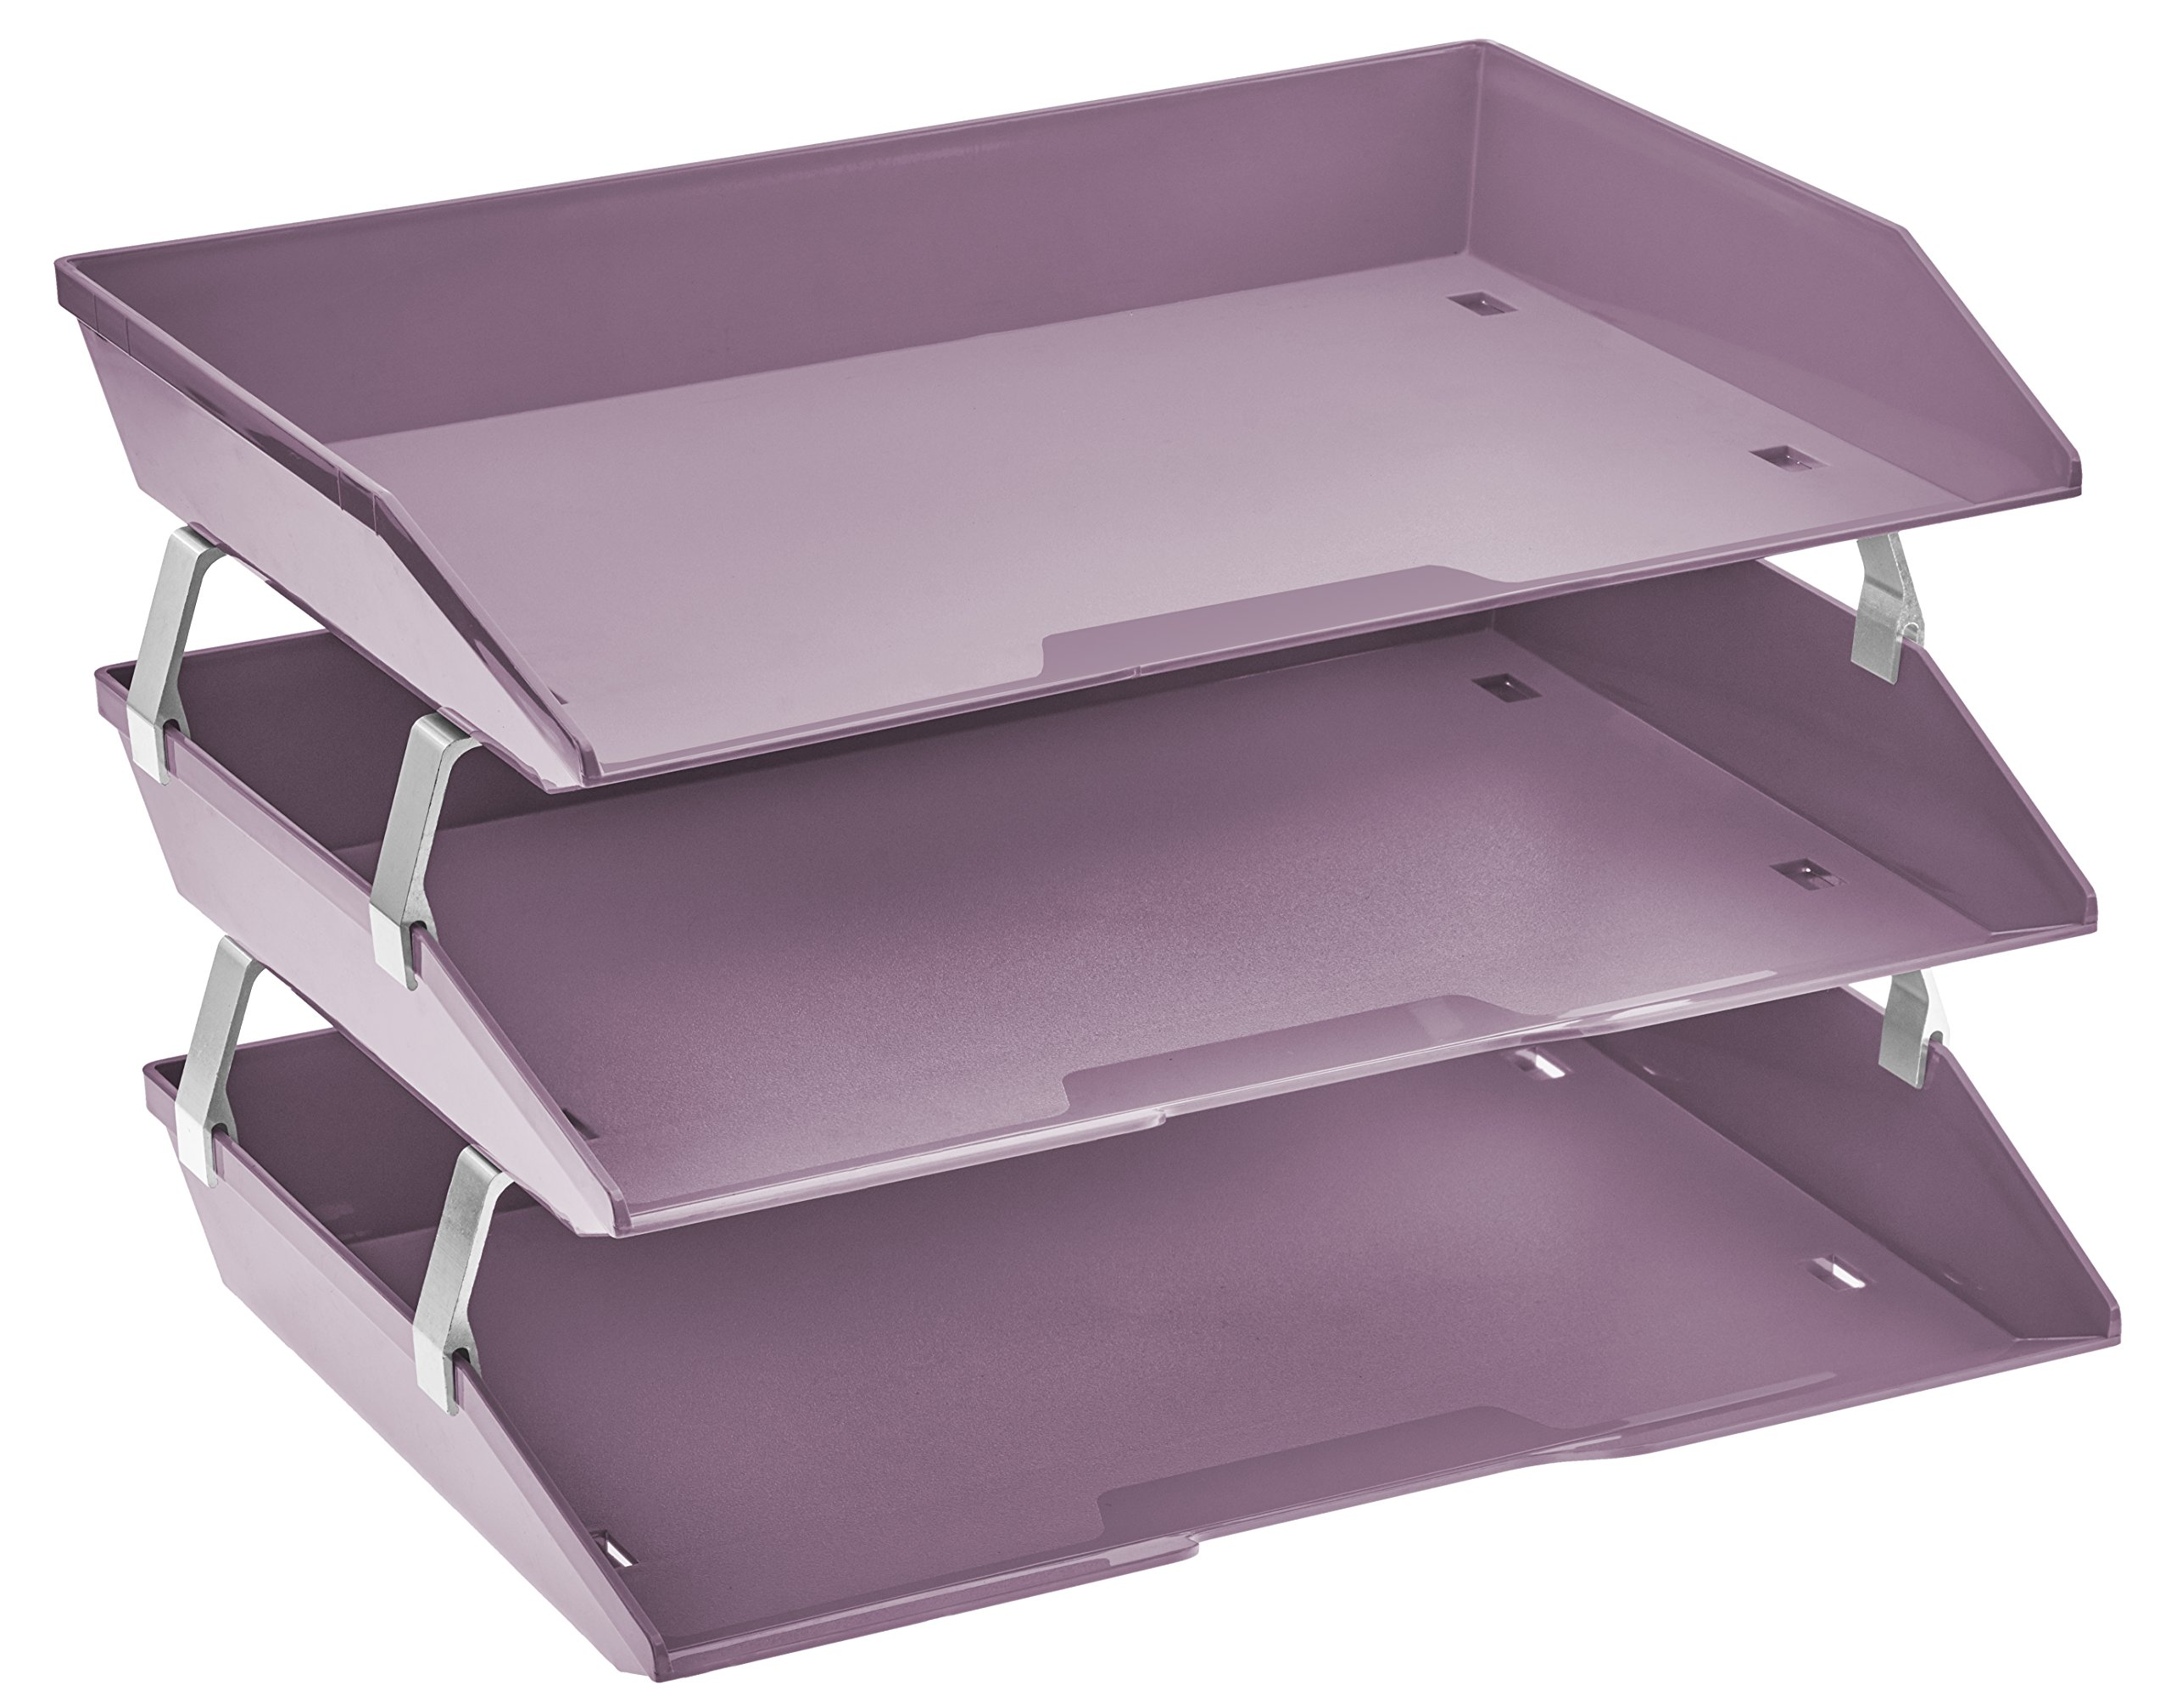 Acrimet Facility 3 Tiers Triple Letter Tray (Solid Purple Color)